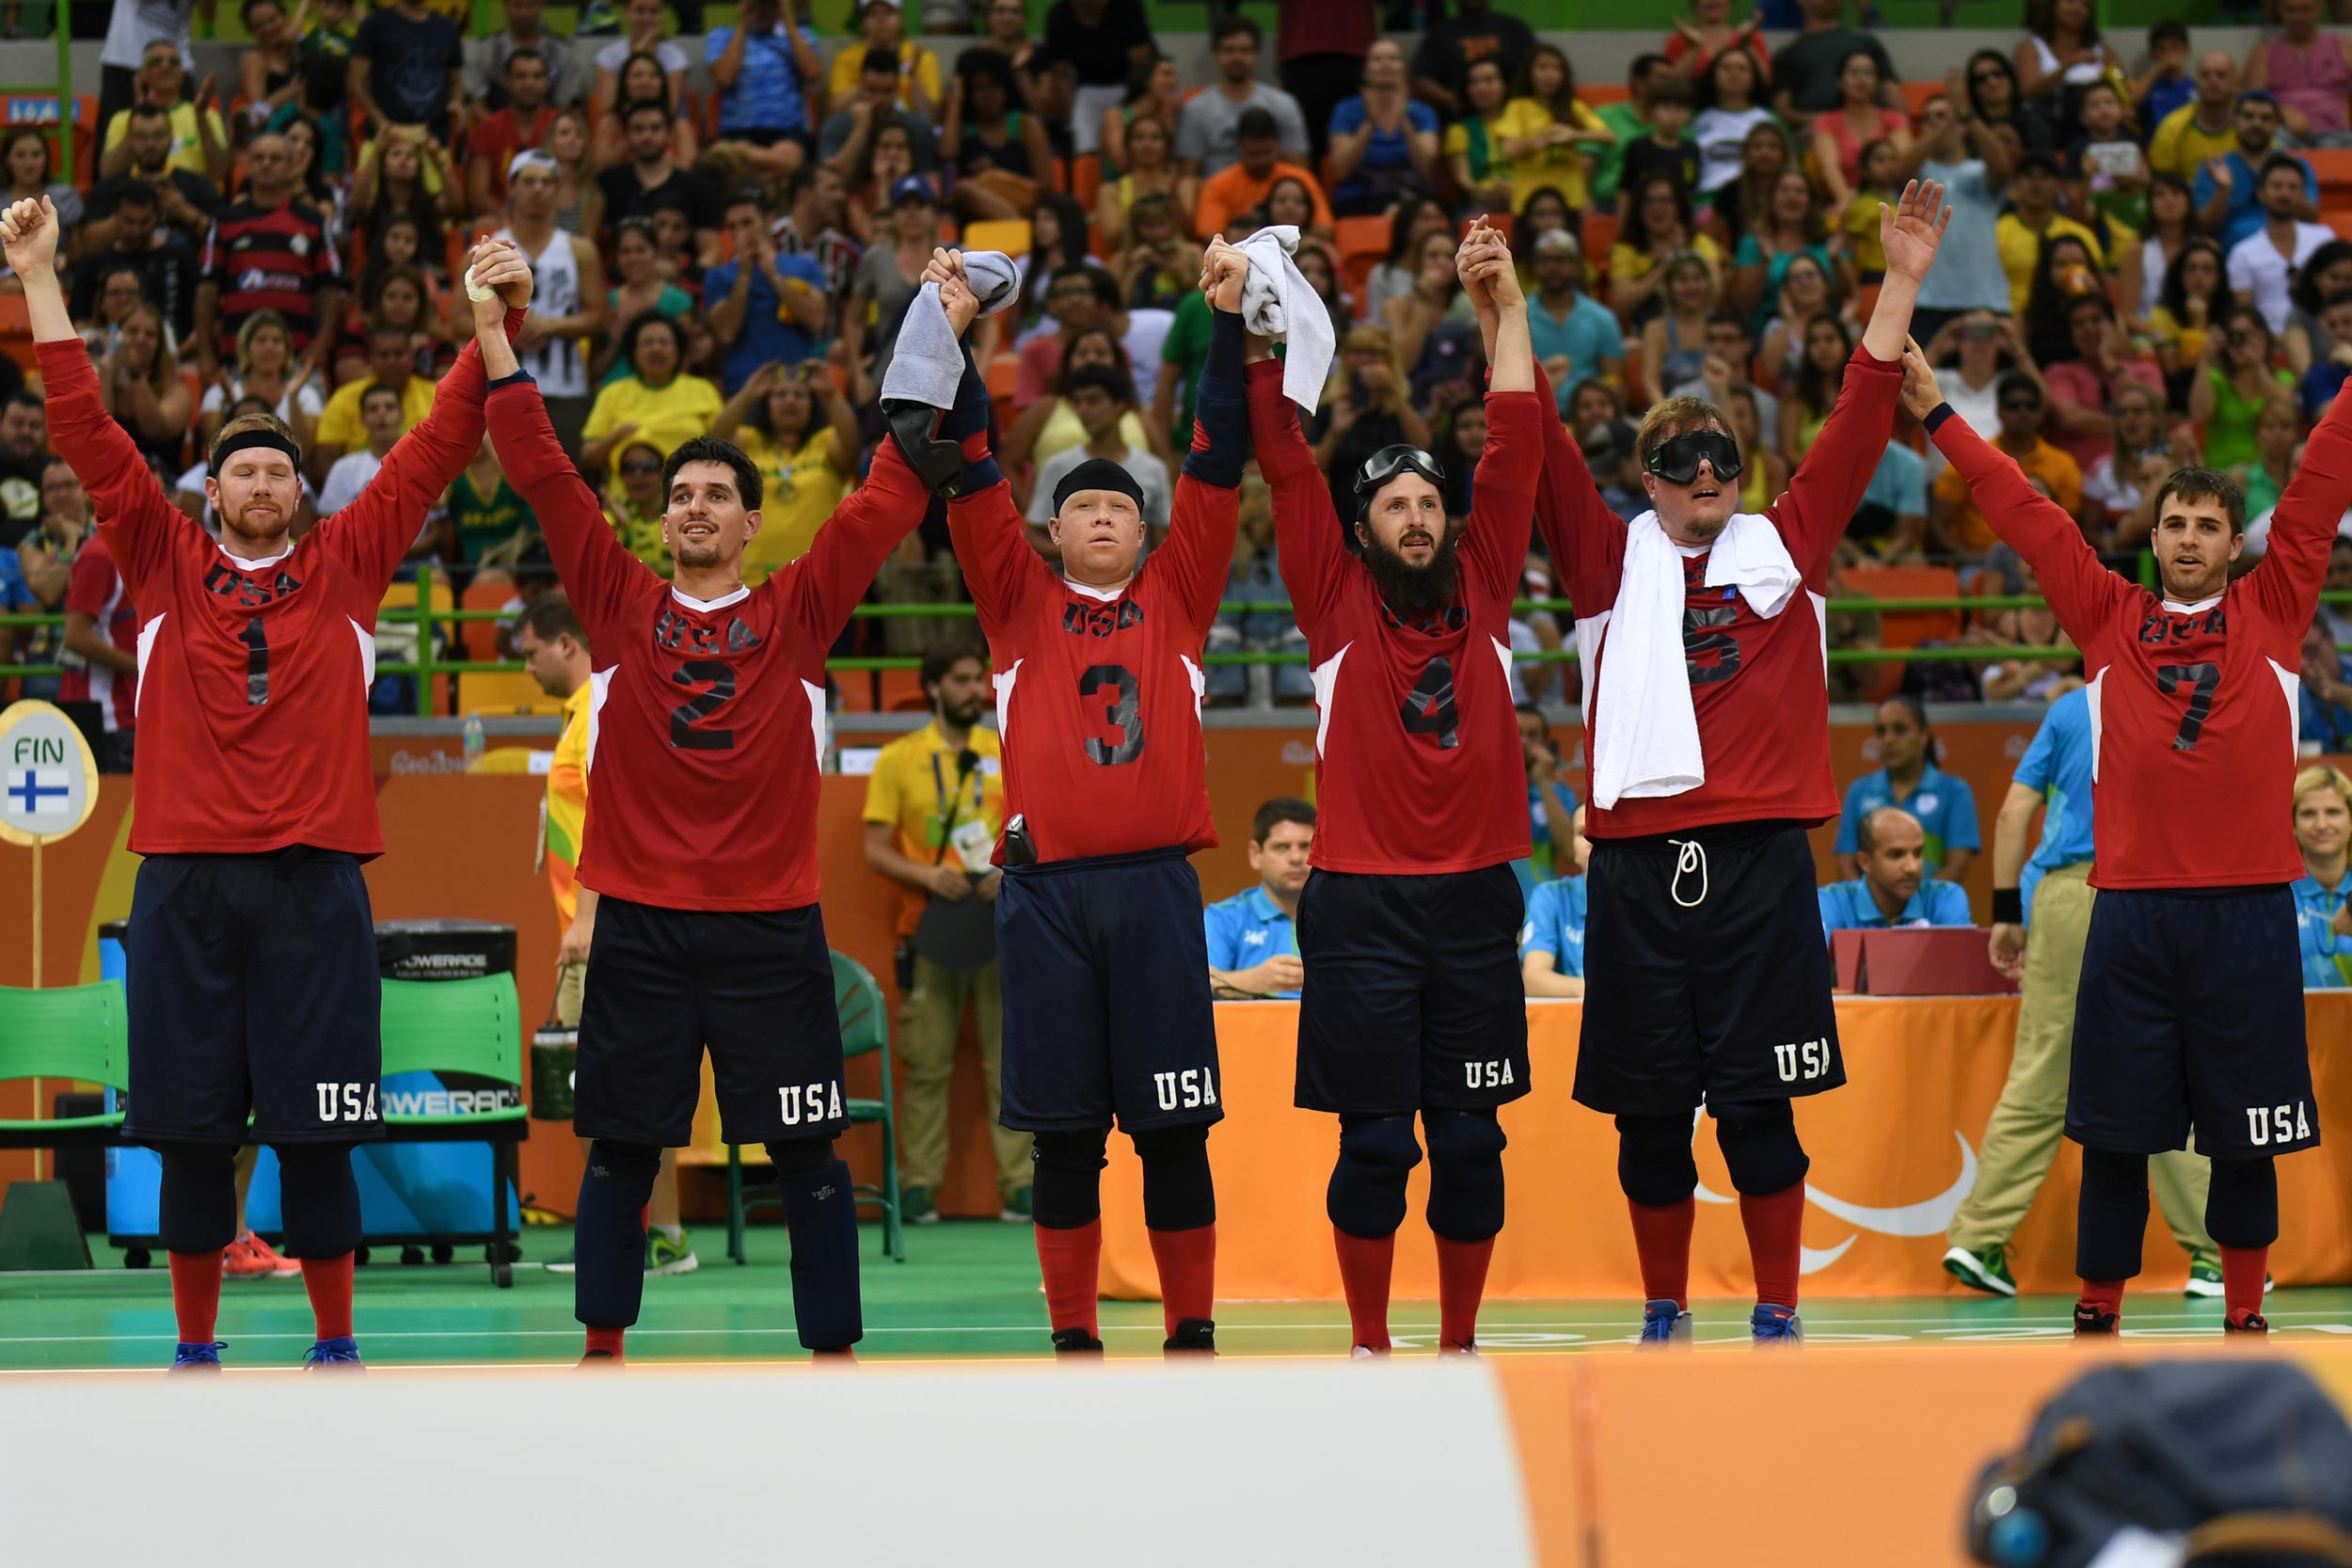 Simpson was part of the U.S. team that won a silver medal at the 2016 Paralympic Games in Rio de Janeiro. (Photo by Loren Worthington)